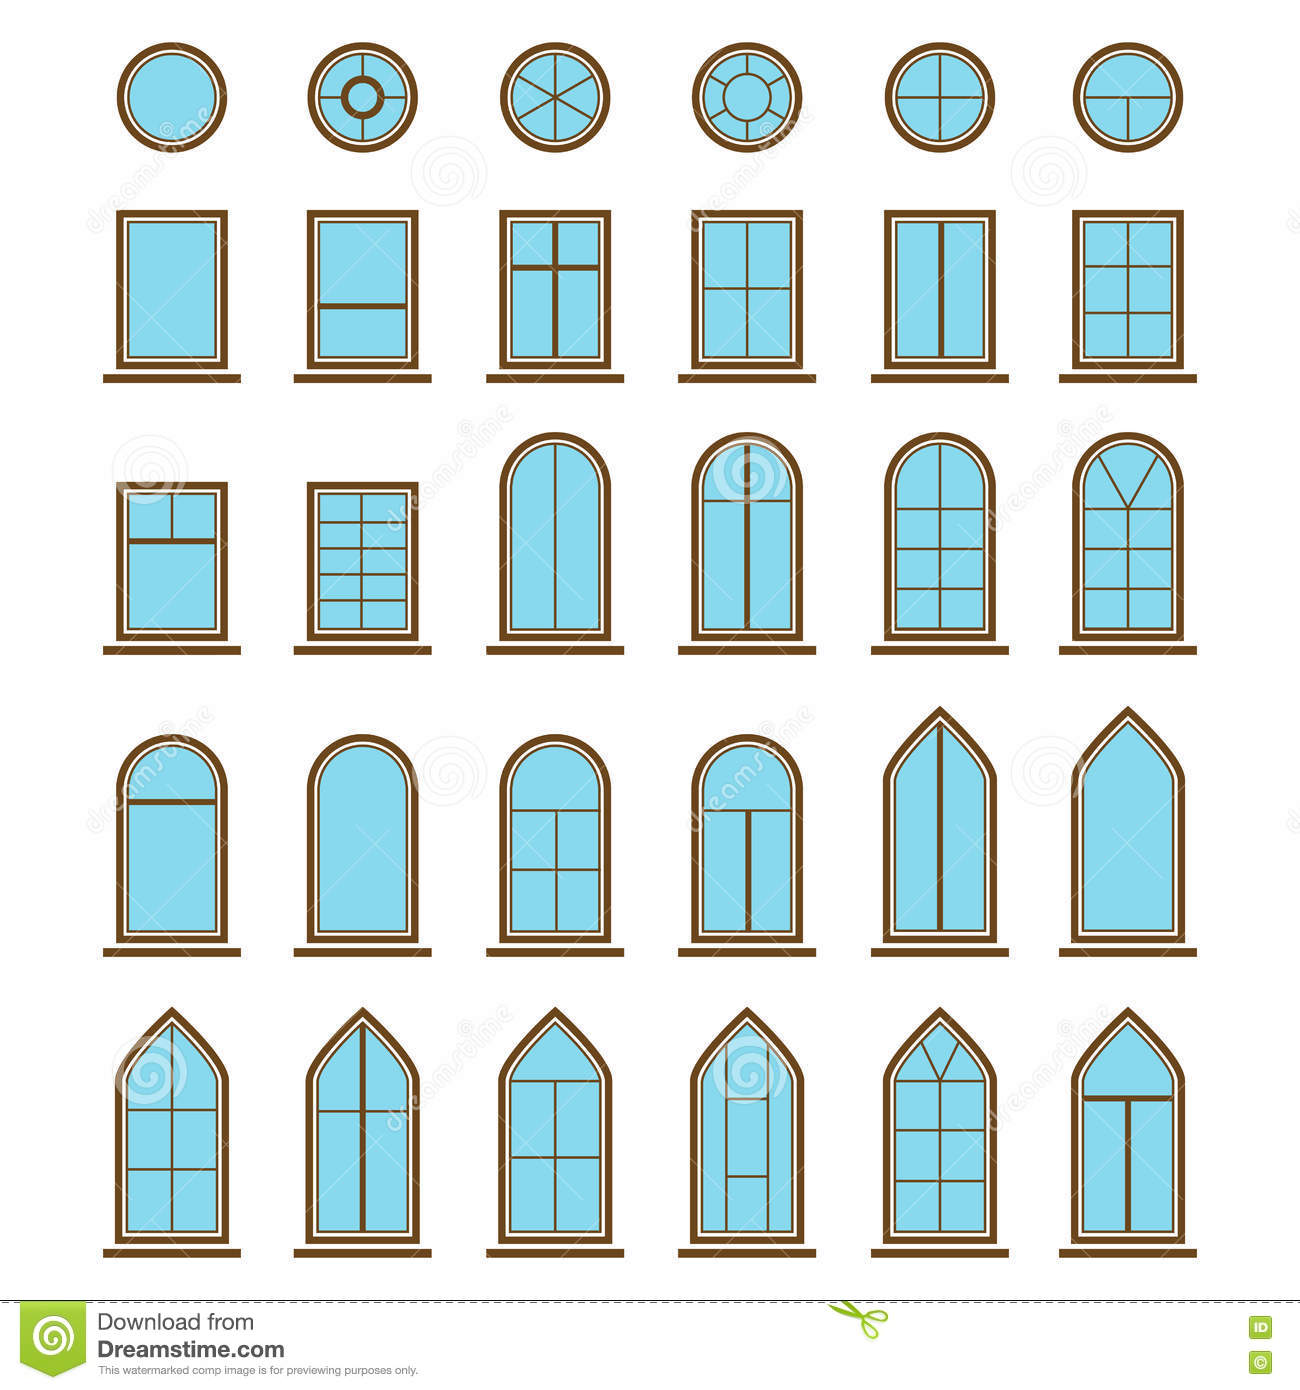 windowpane cartoons illustrations vector stock images 144 pictures to download from. Black Bedroom Furniture Sets. Home Design Ideas